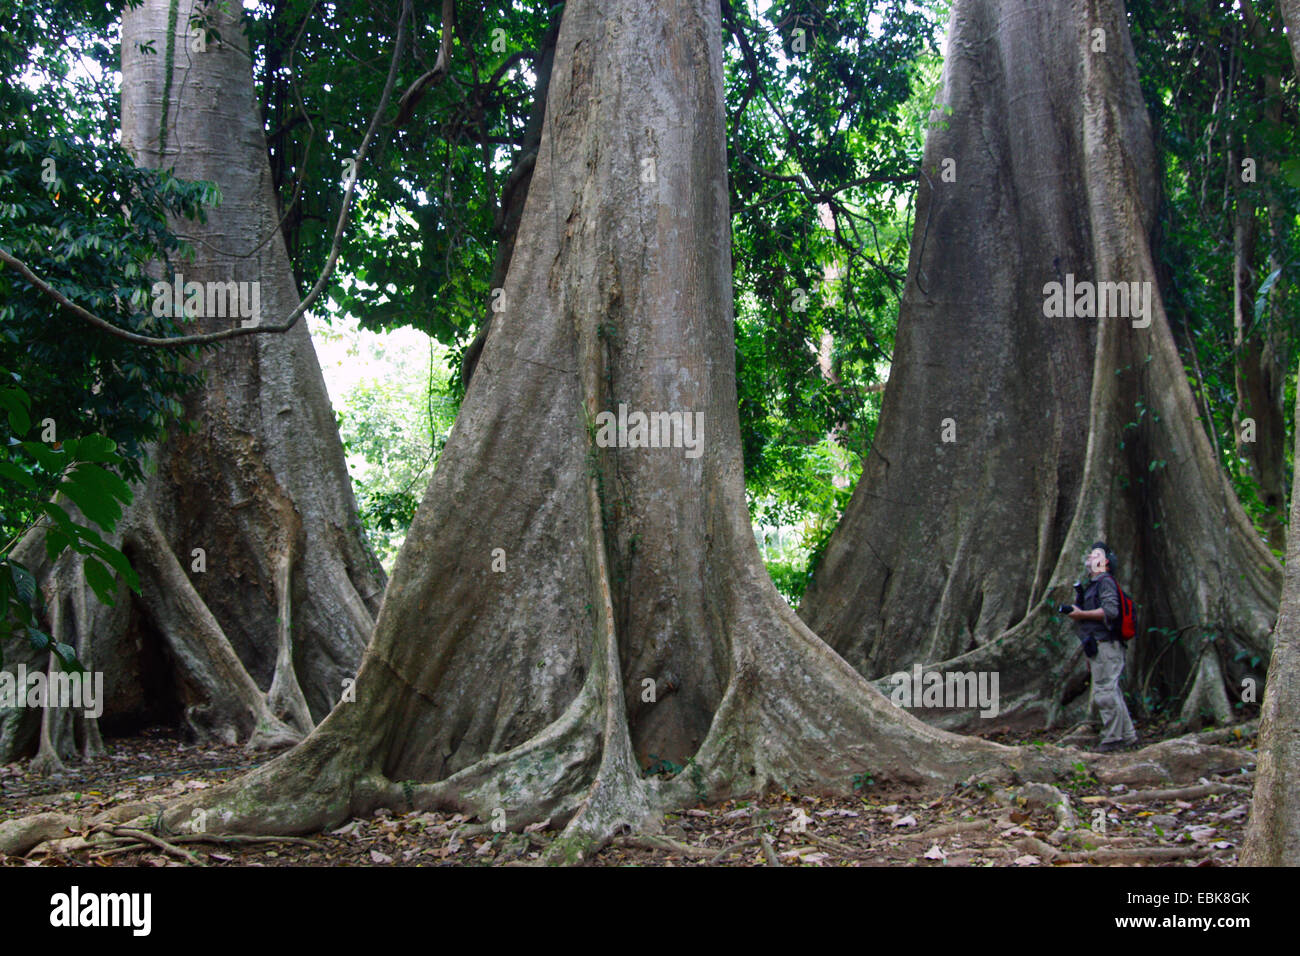 tropical tree with buttress roots, Thailand, Khao Sok National Park - Stock Image